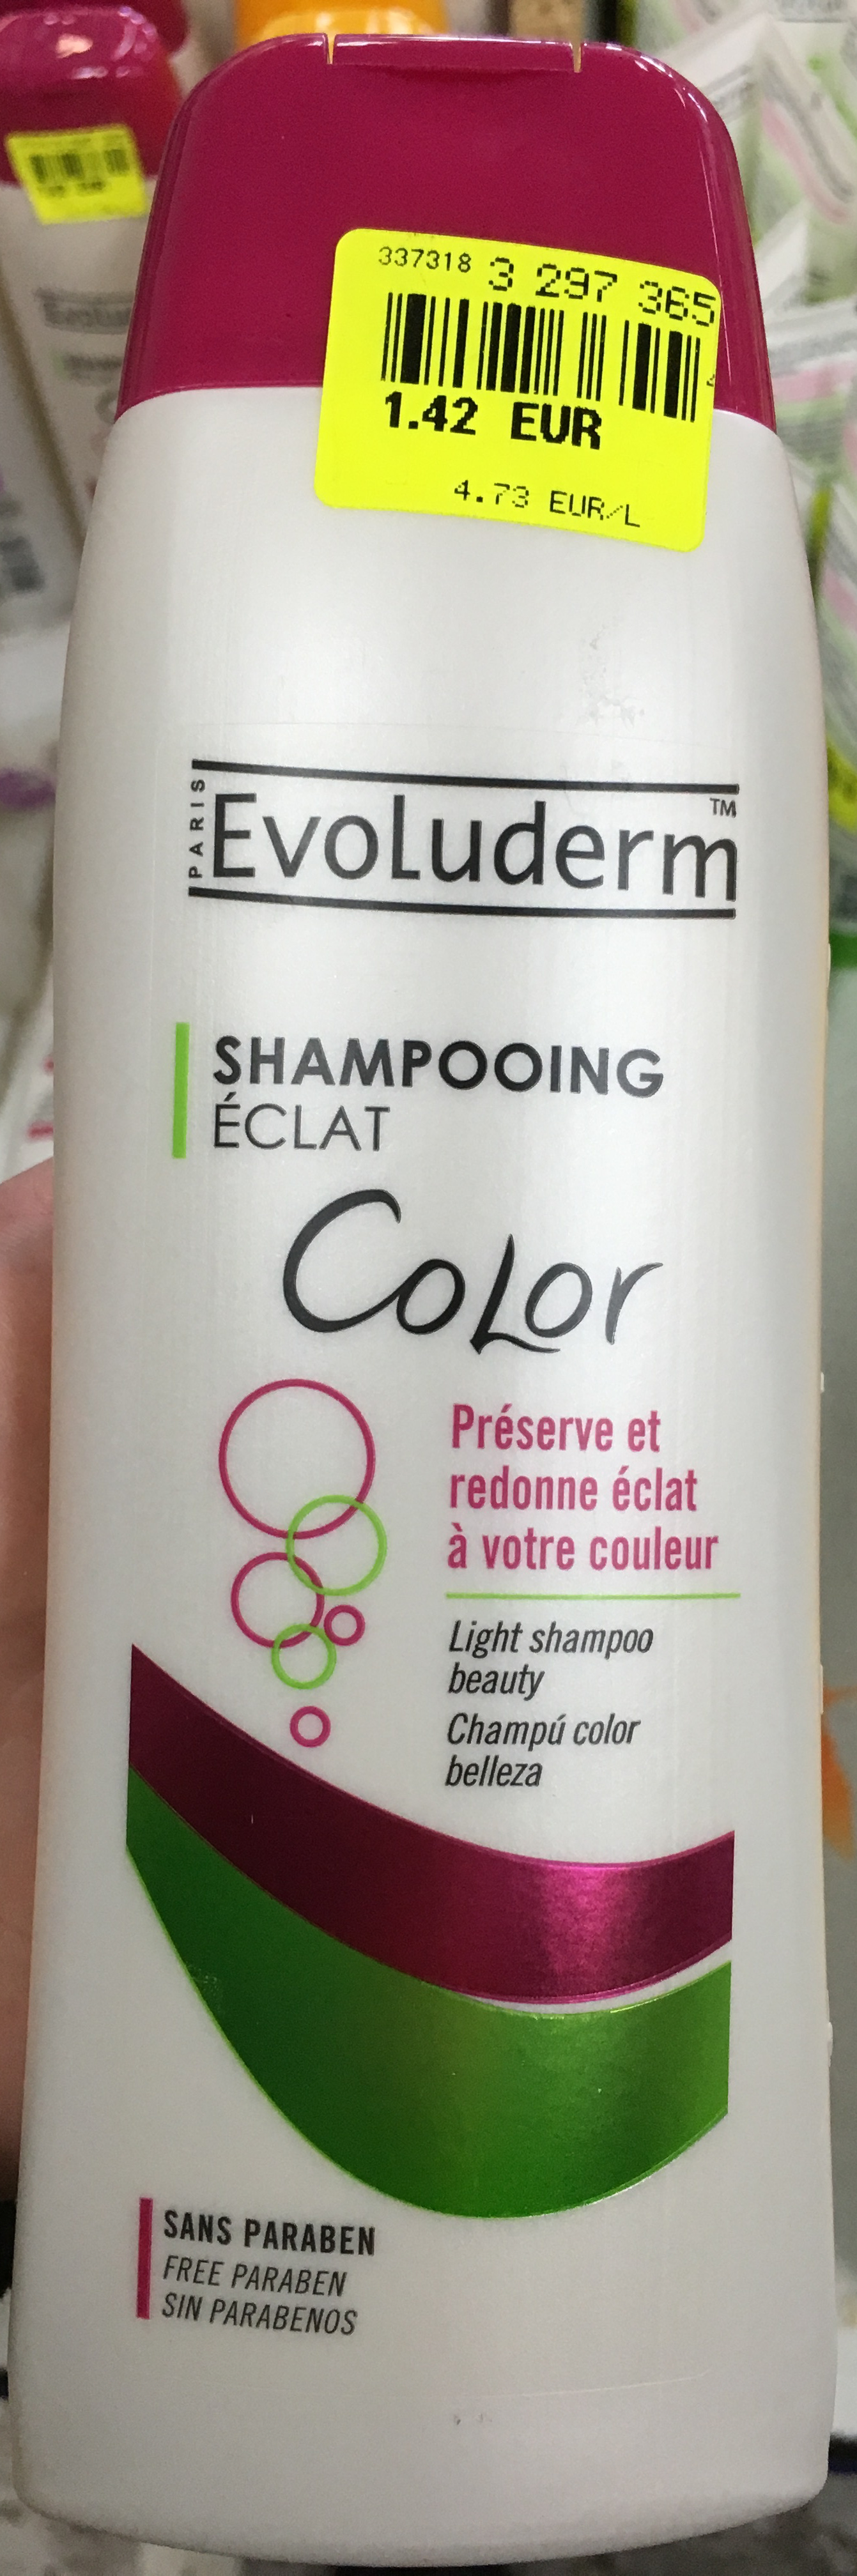 Shampooing éclat Color - Product